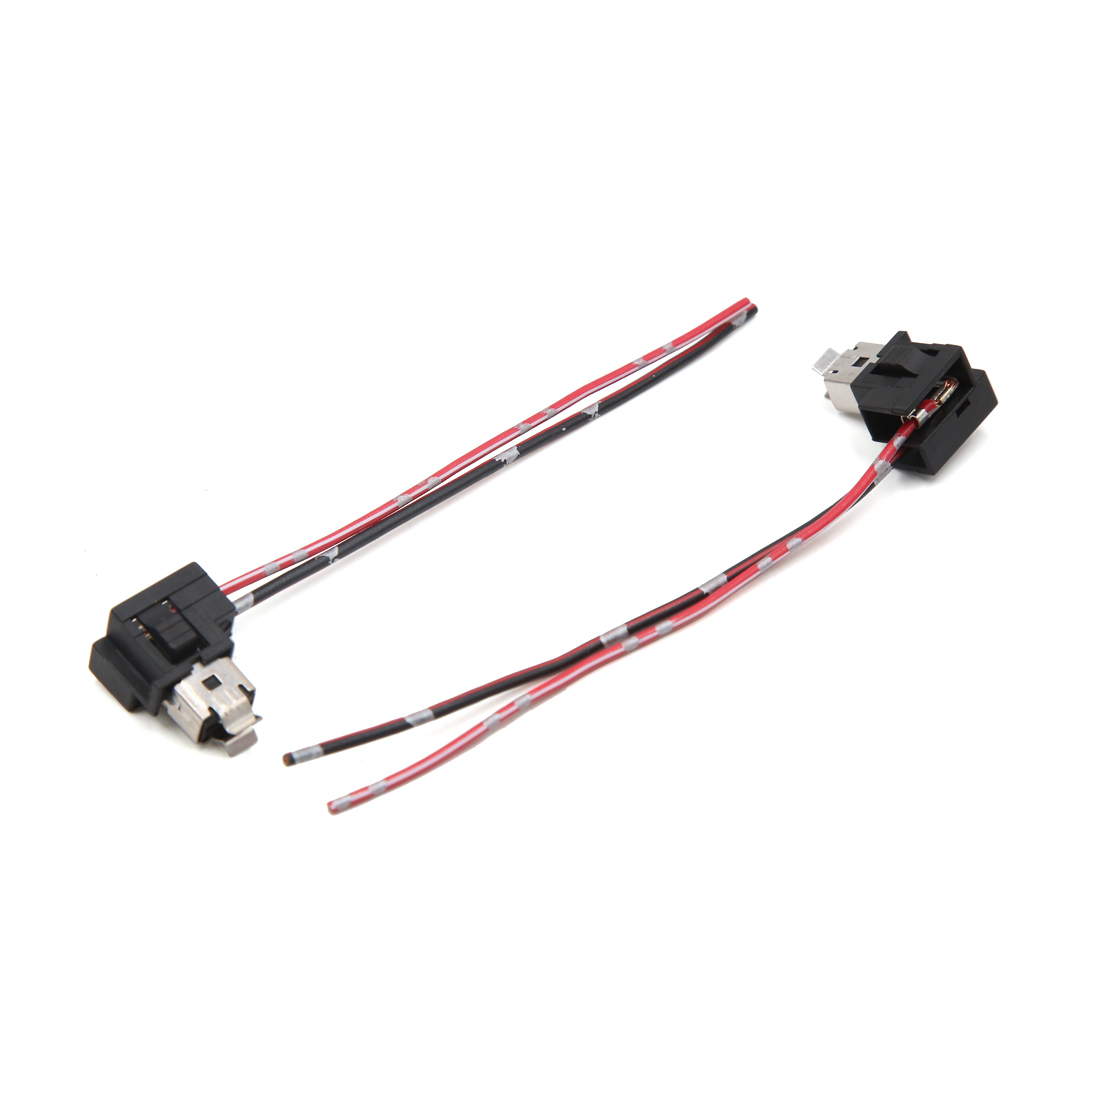 small resolution of 2pcs h1 dc 12v car bulb holder light socket headlight connector wire harness